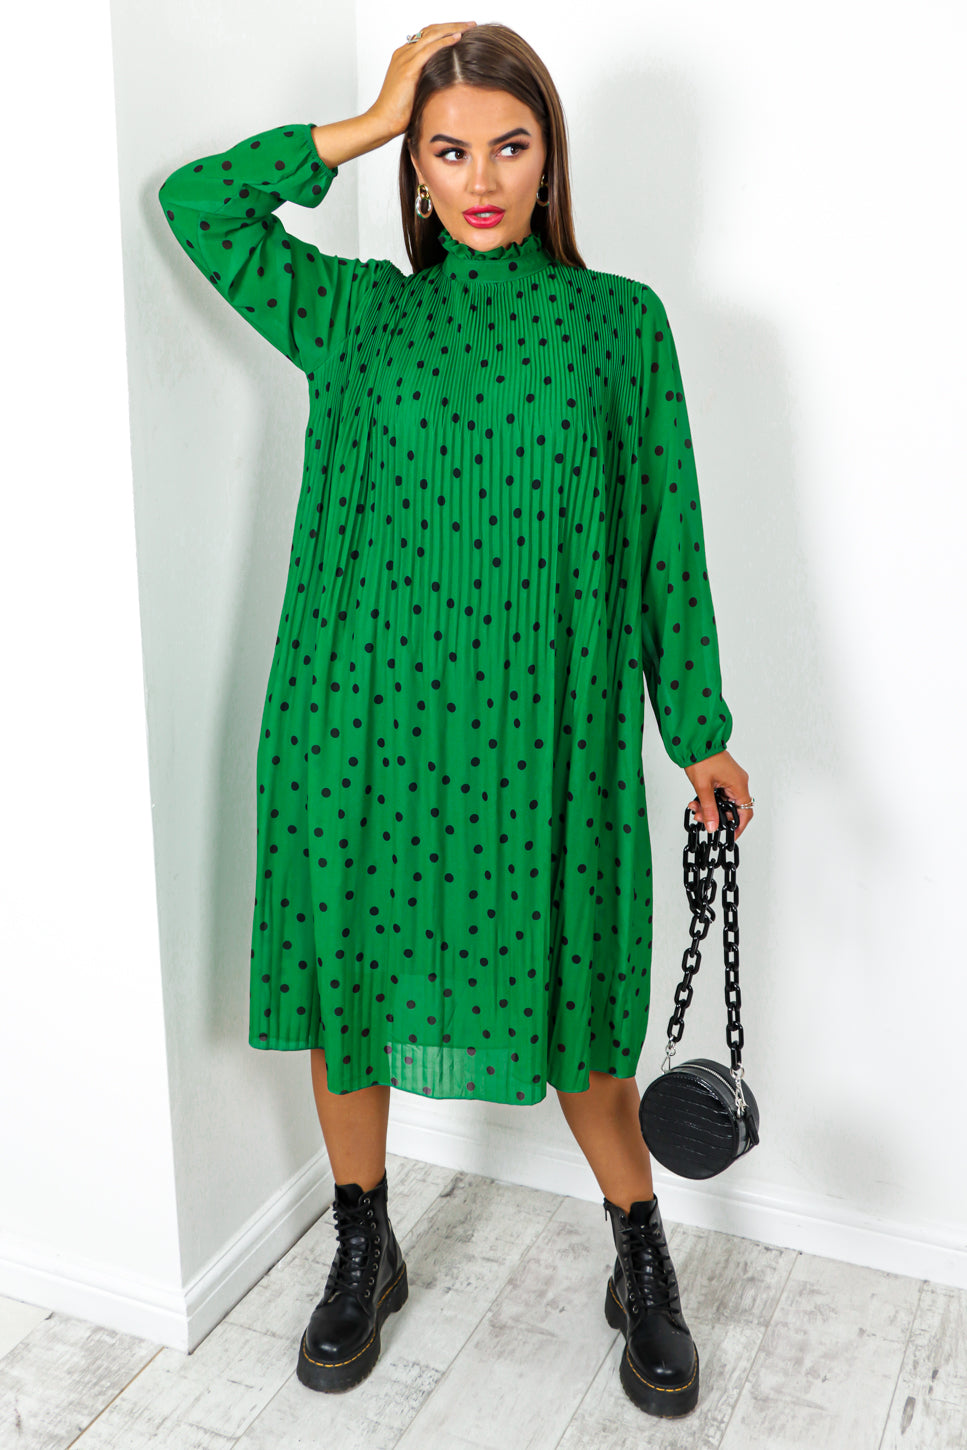 Don't Blend In - Green Black Polka Dot Print Pleated Midi Dress